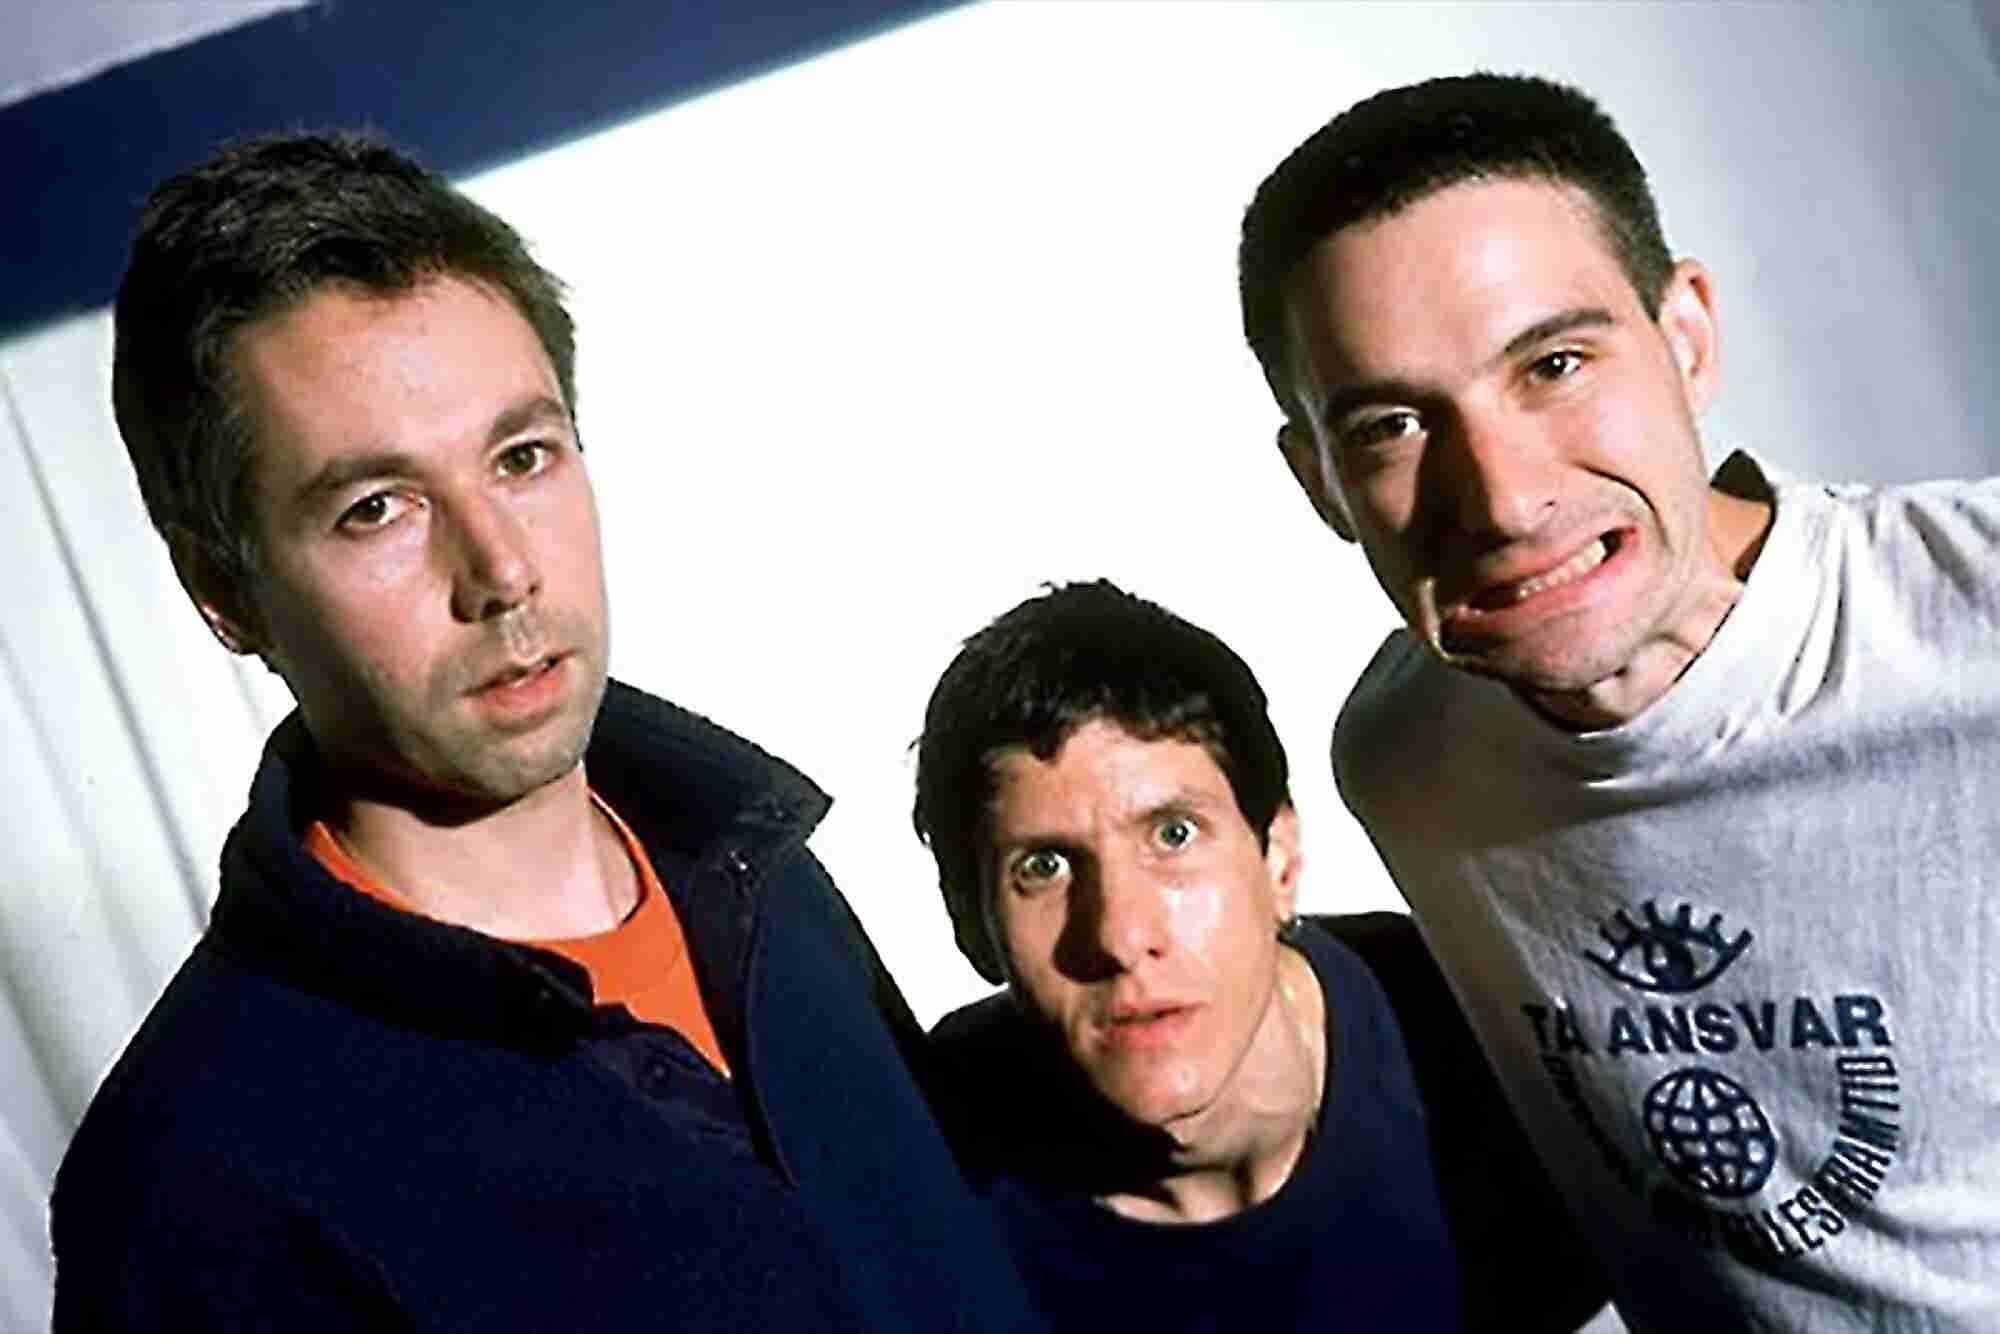 In New Lawsuit, Beastie Boys Say GoldieBlox Acted 'Despicably With Opp...